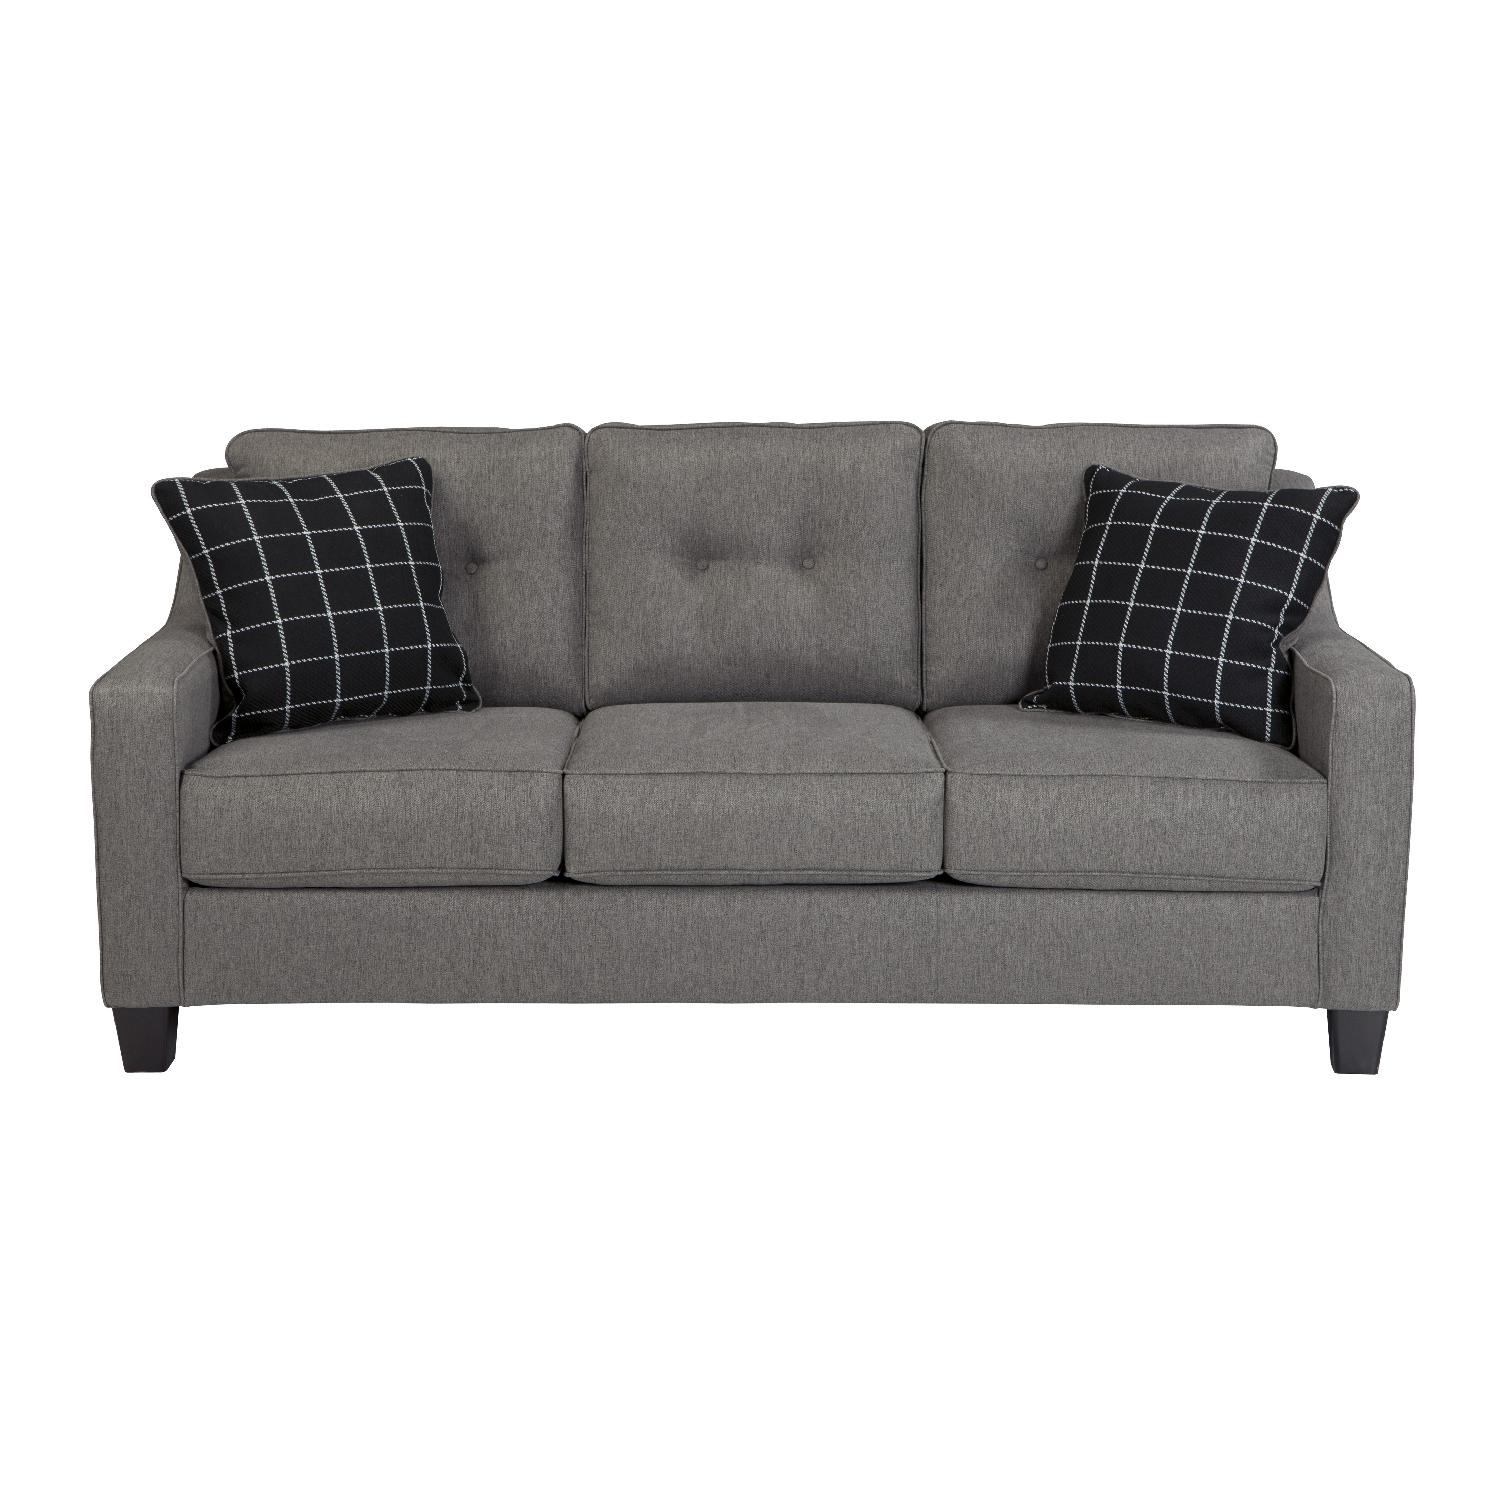 Ashley's Brindon Charcoal Gray Comptemporary Fabric 3 Seater Sofas